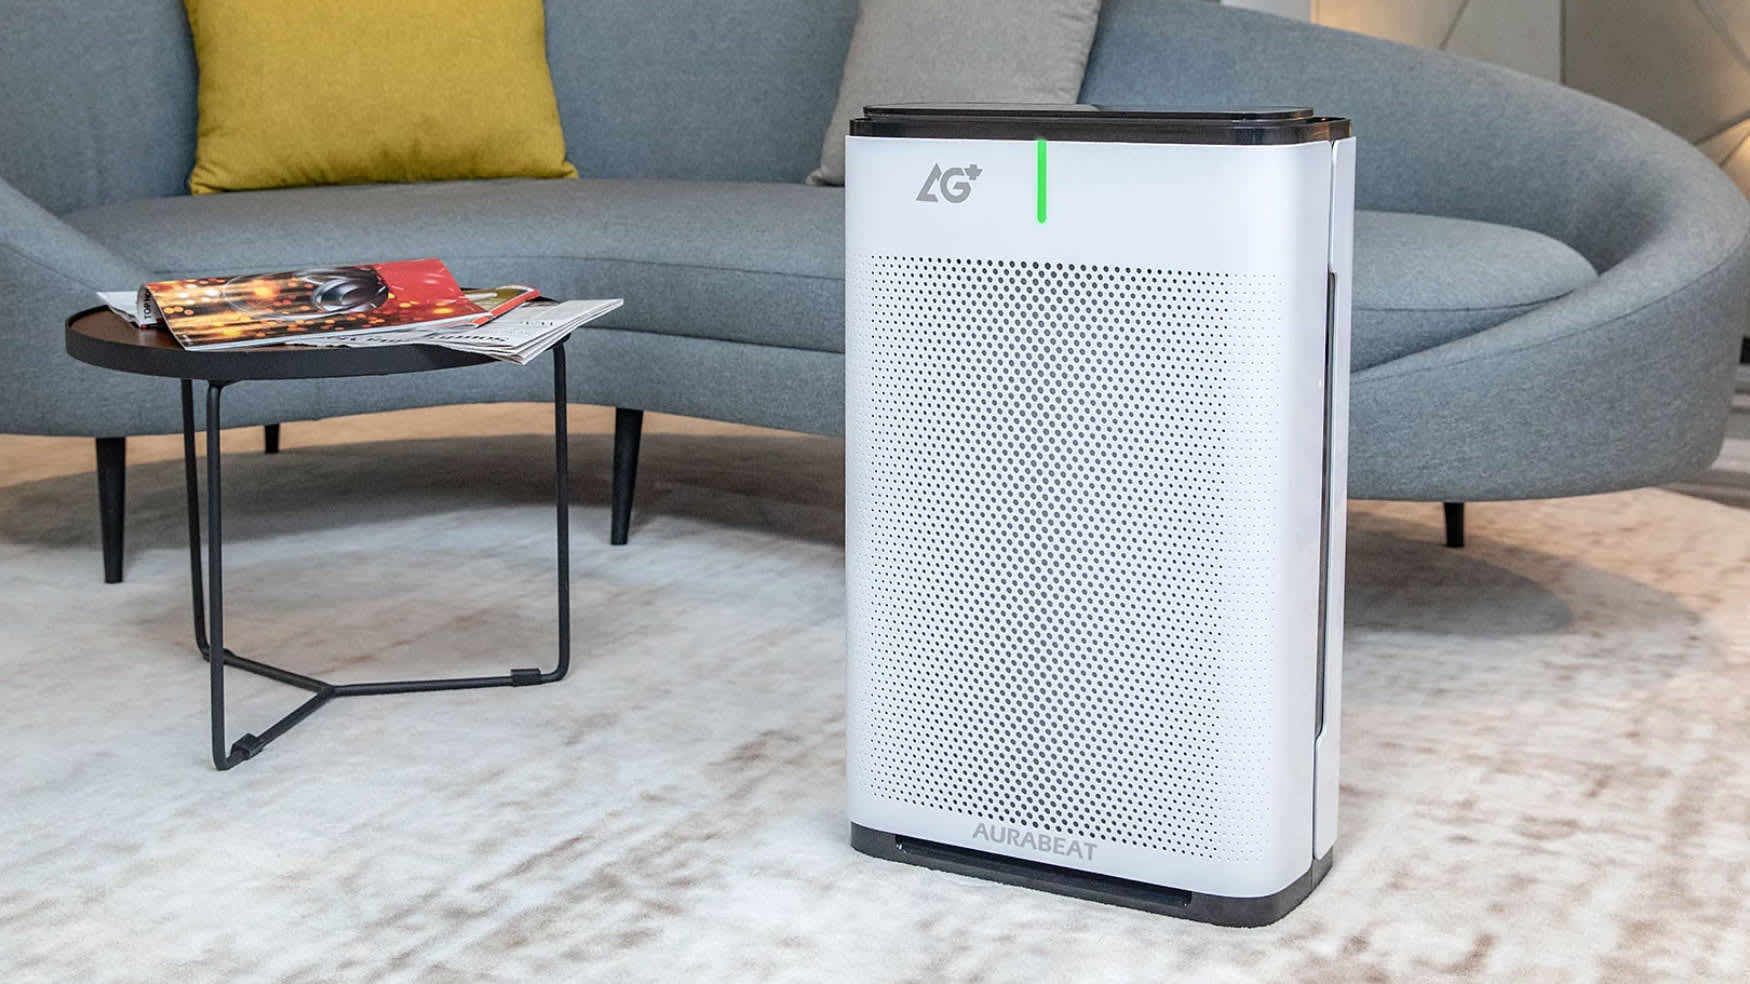 Coronavirus air purifier that kills over 99.9% of Covid-19 sees surge in  demand